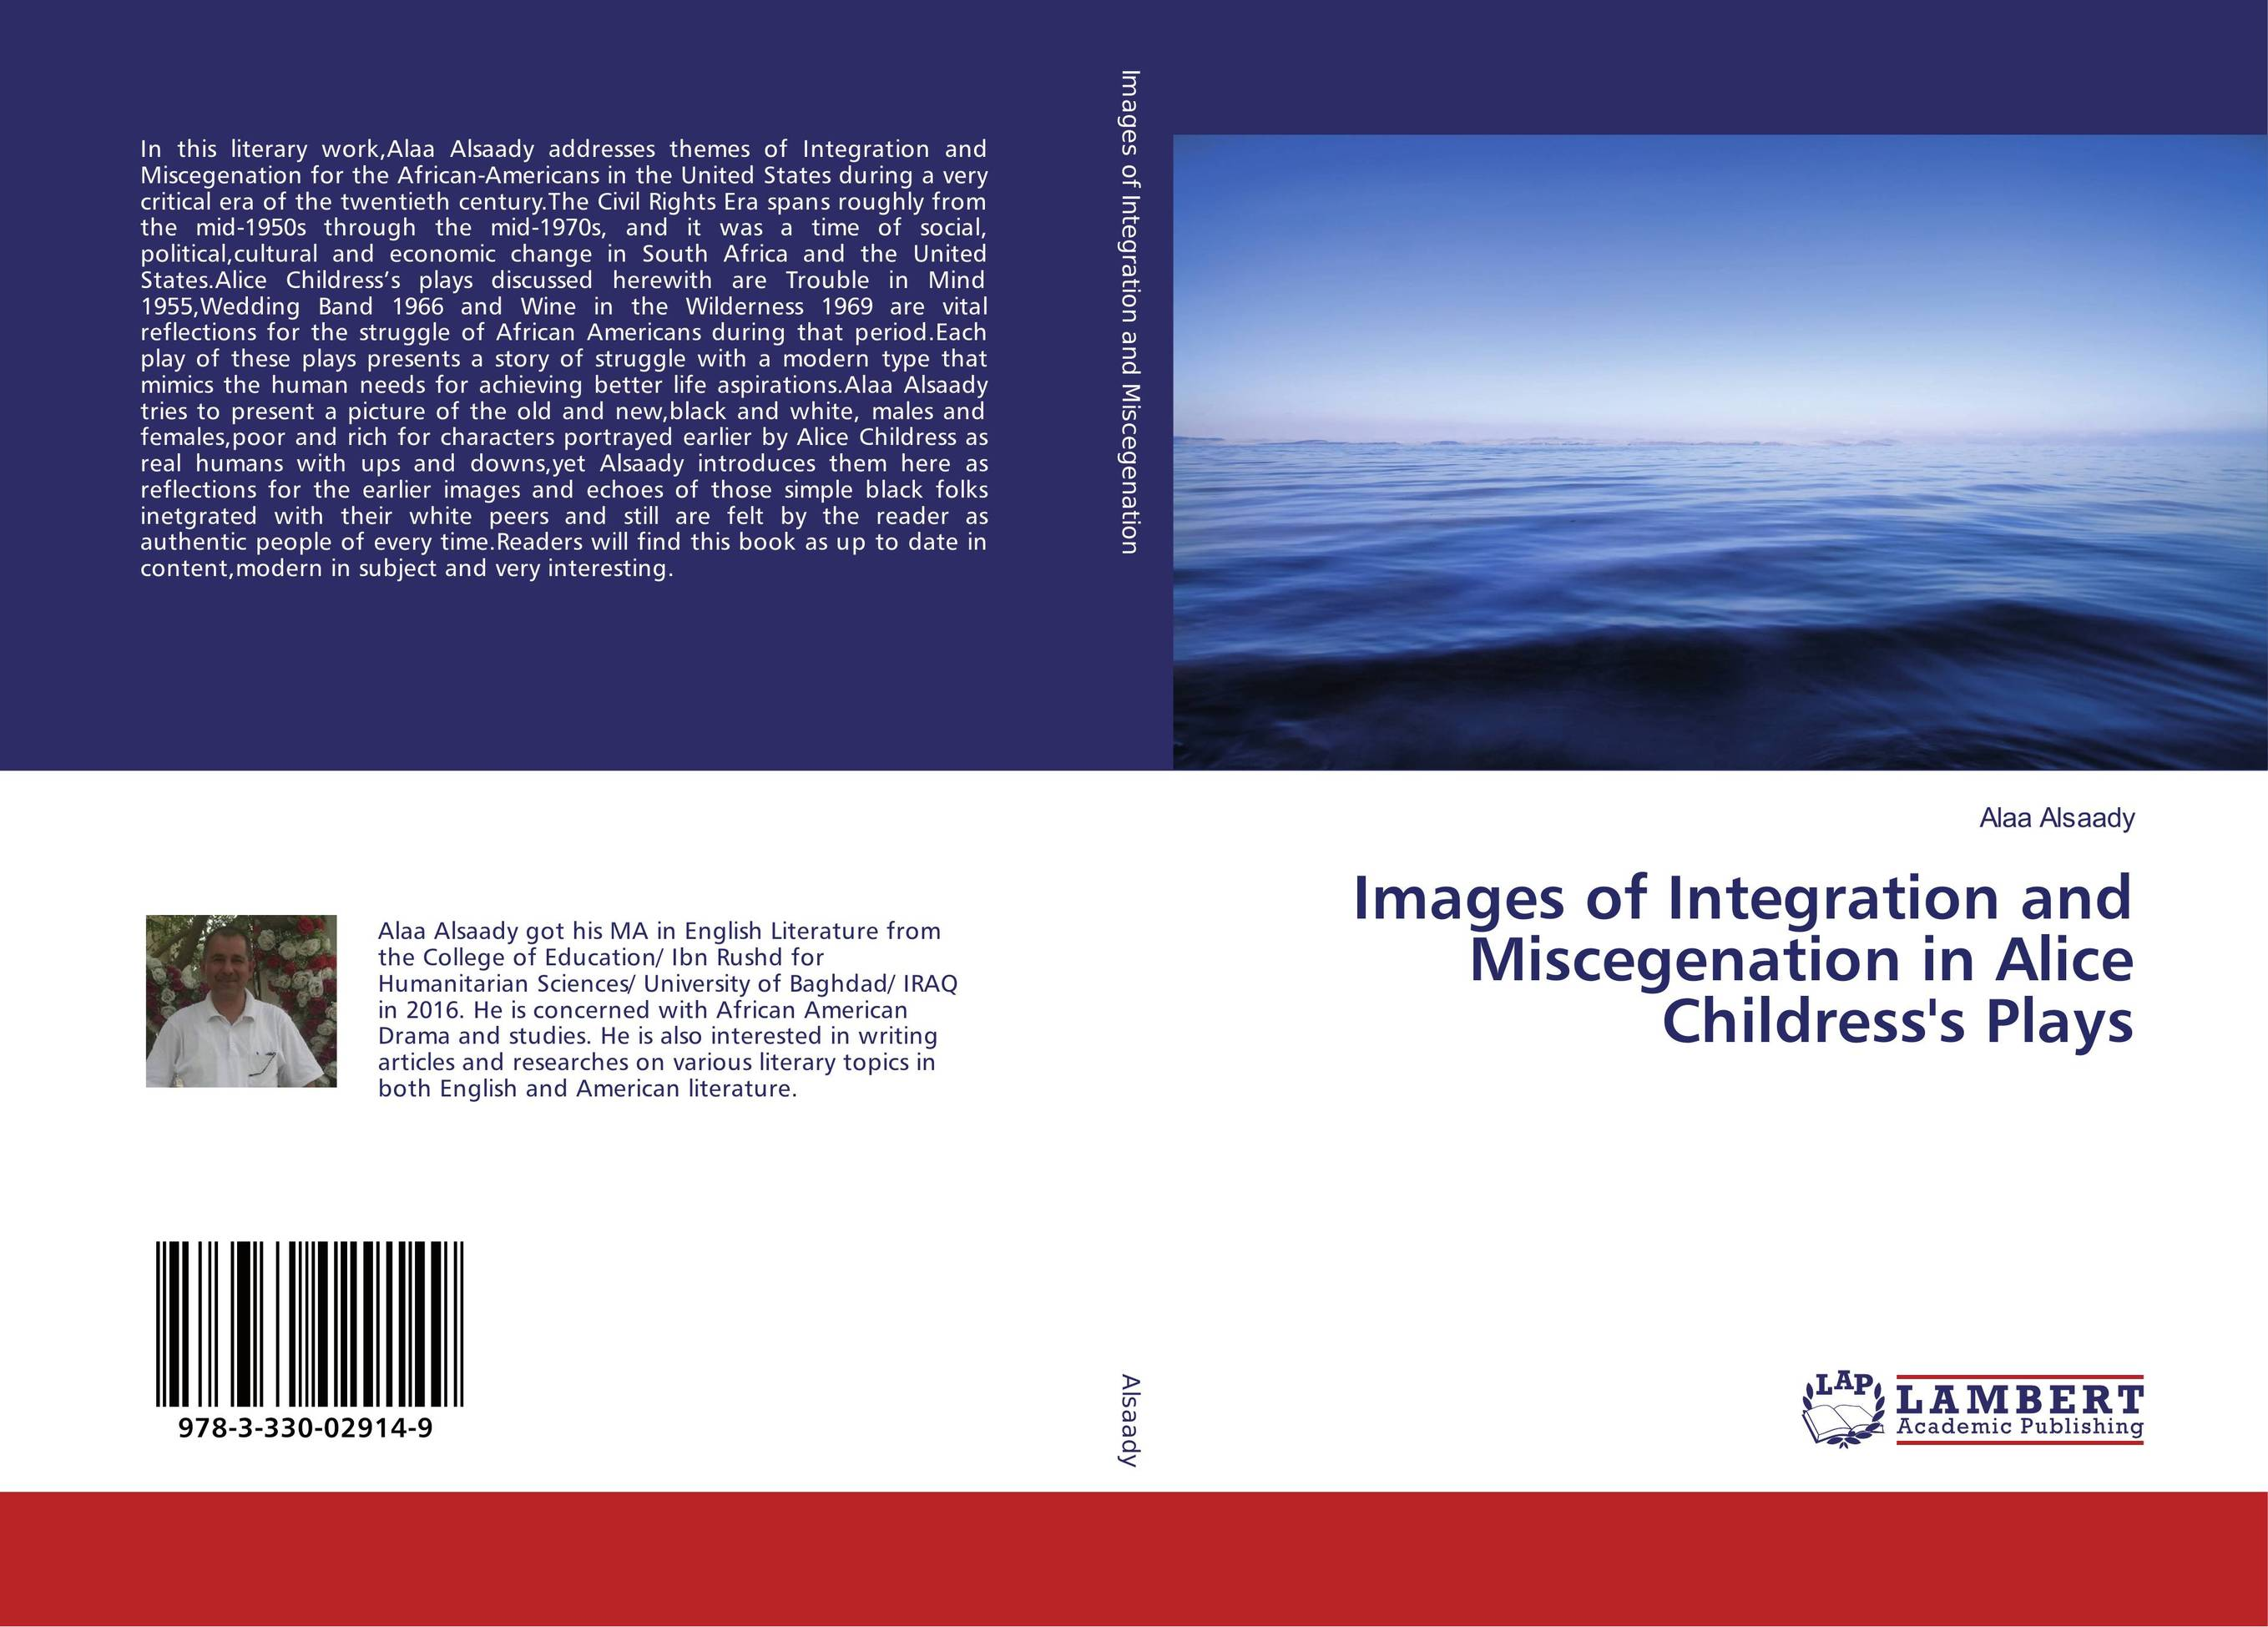 9783330029149 Images of Integration and Miscegenation in Alice Cdress's Plays